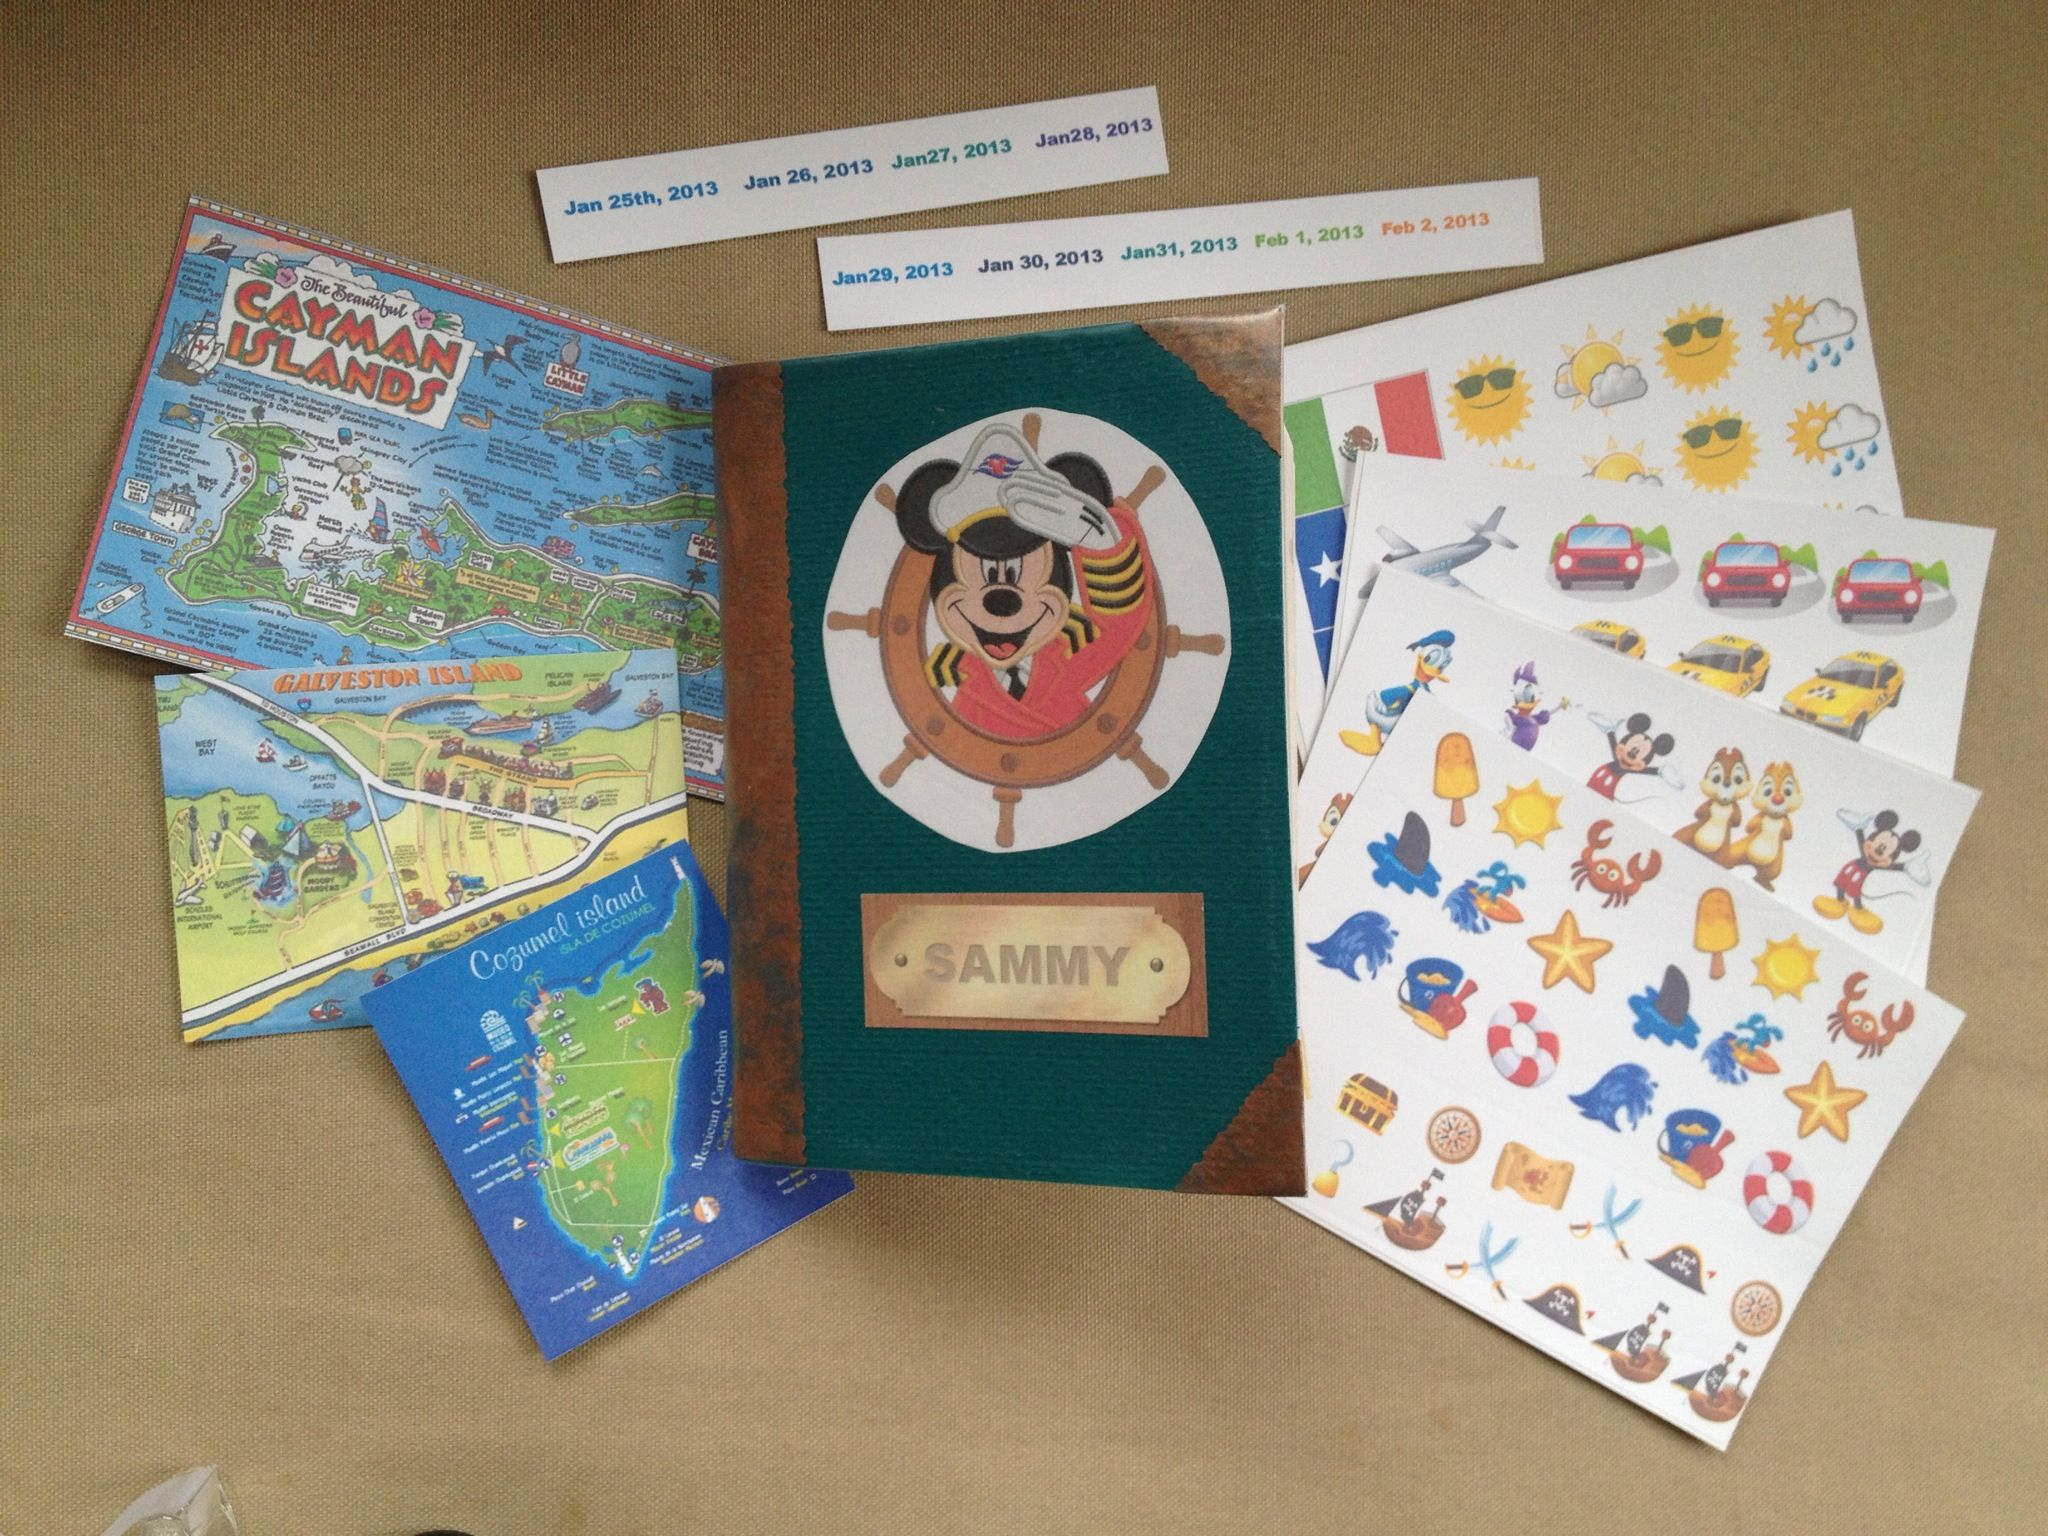 How to scrapbook disney vacation - How To Make A Kids Passport Scrapbook For Vacation